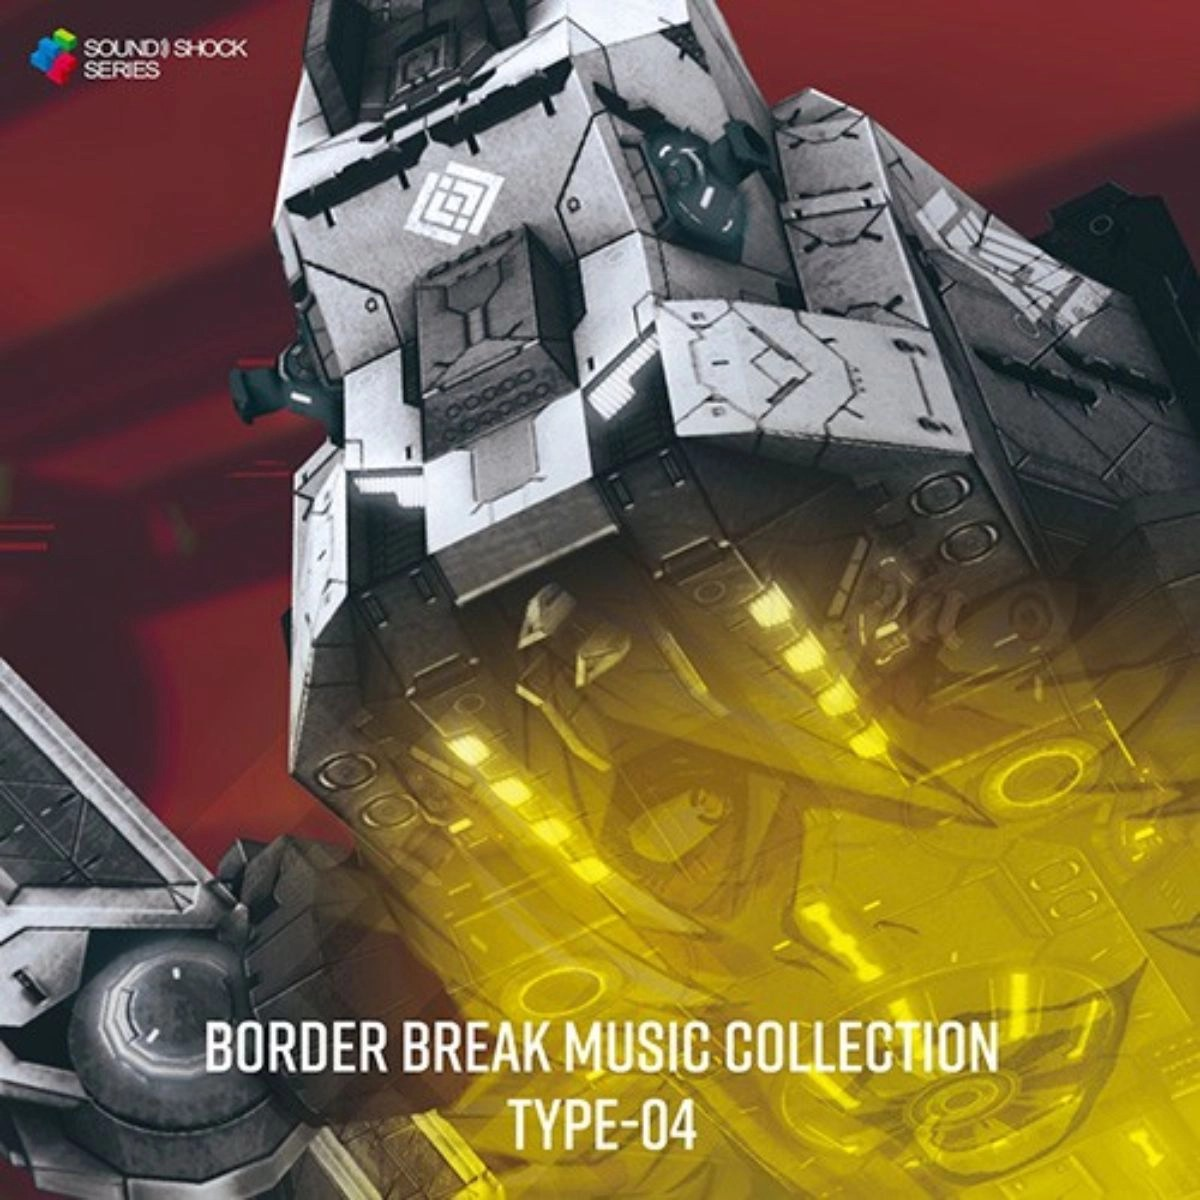 BORDER BREAK MUSIC COLLECTION TYPE-04